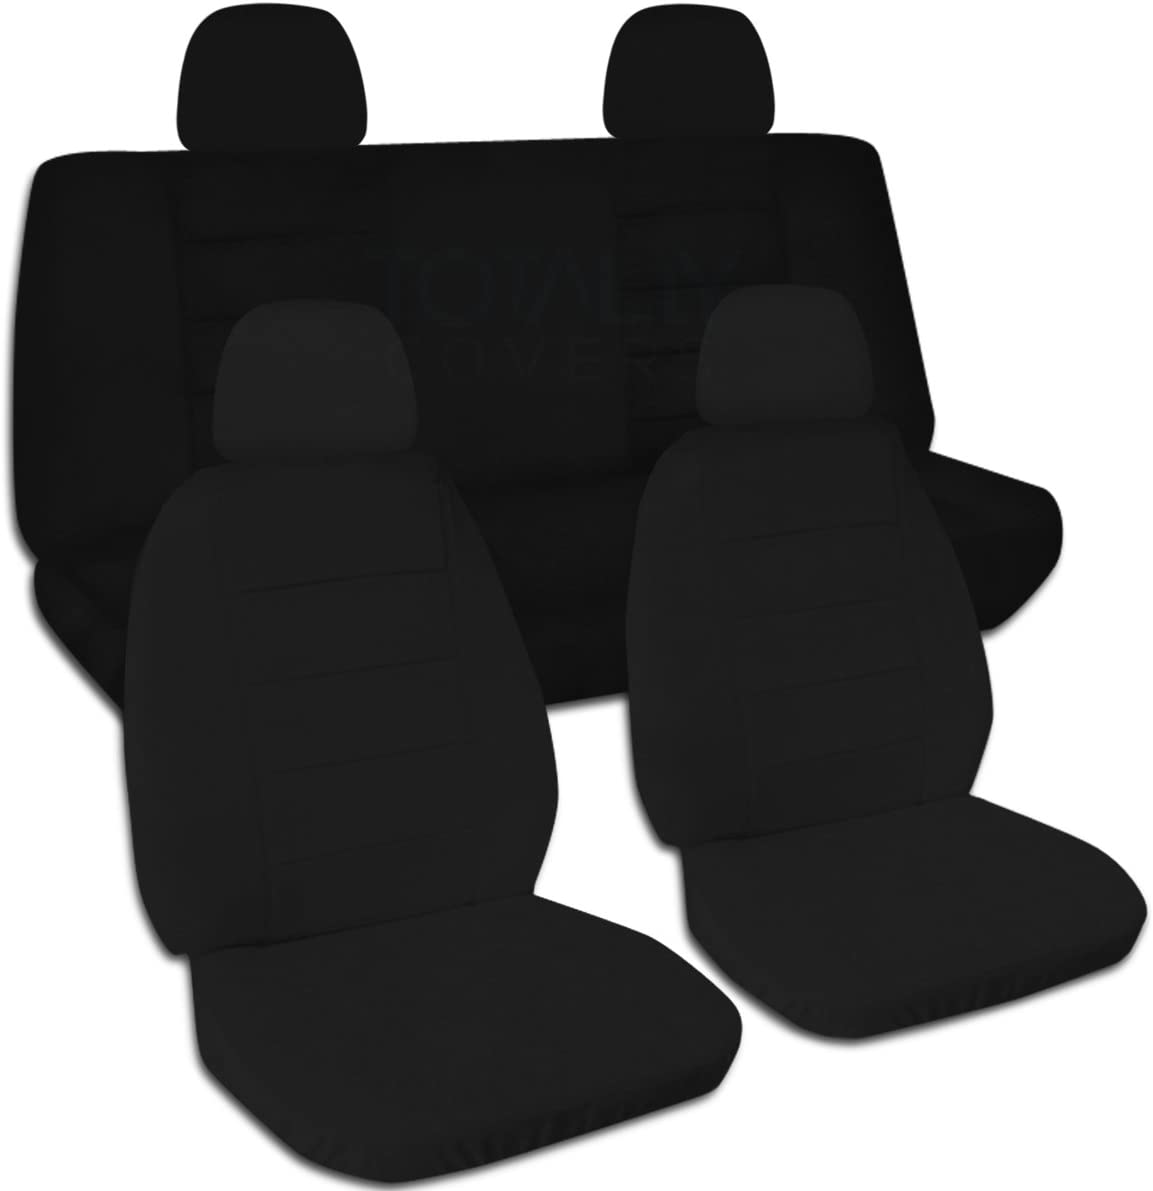 Totally Covers Solid Color Car Seat Covers w 4 (2 Front + 2 Rear) Headrest Covers: Black - Universal Fit - Full Set - Buckets & Bench - Option for Airbag/Seat Belt/Armrest/Lever/Split Compatible